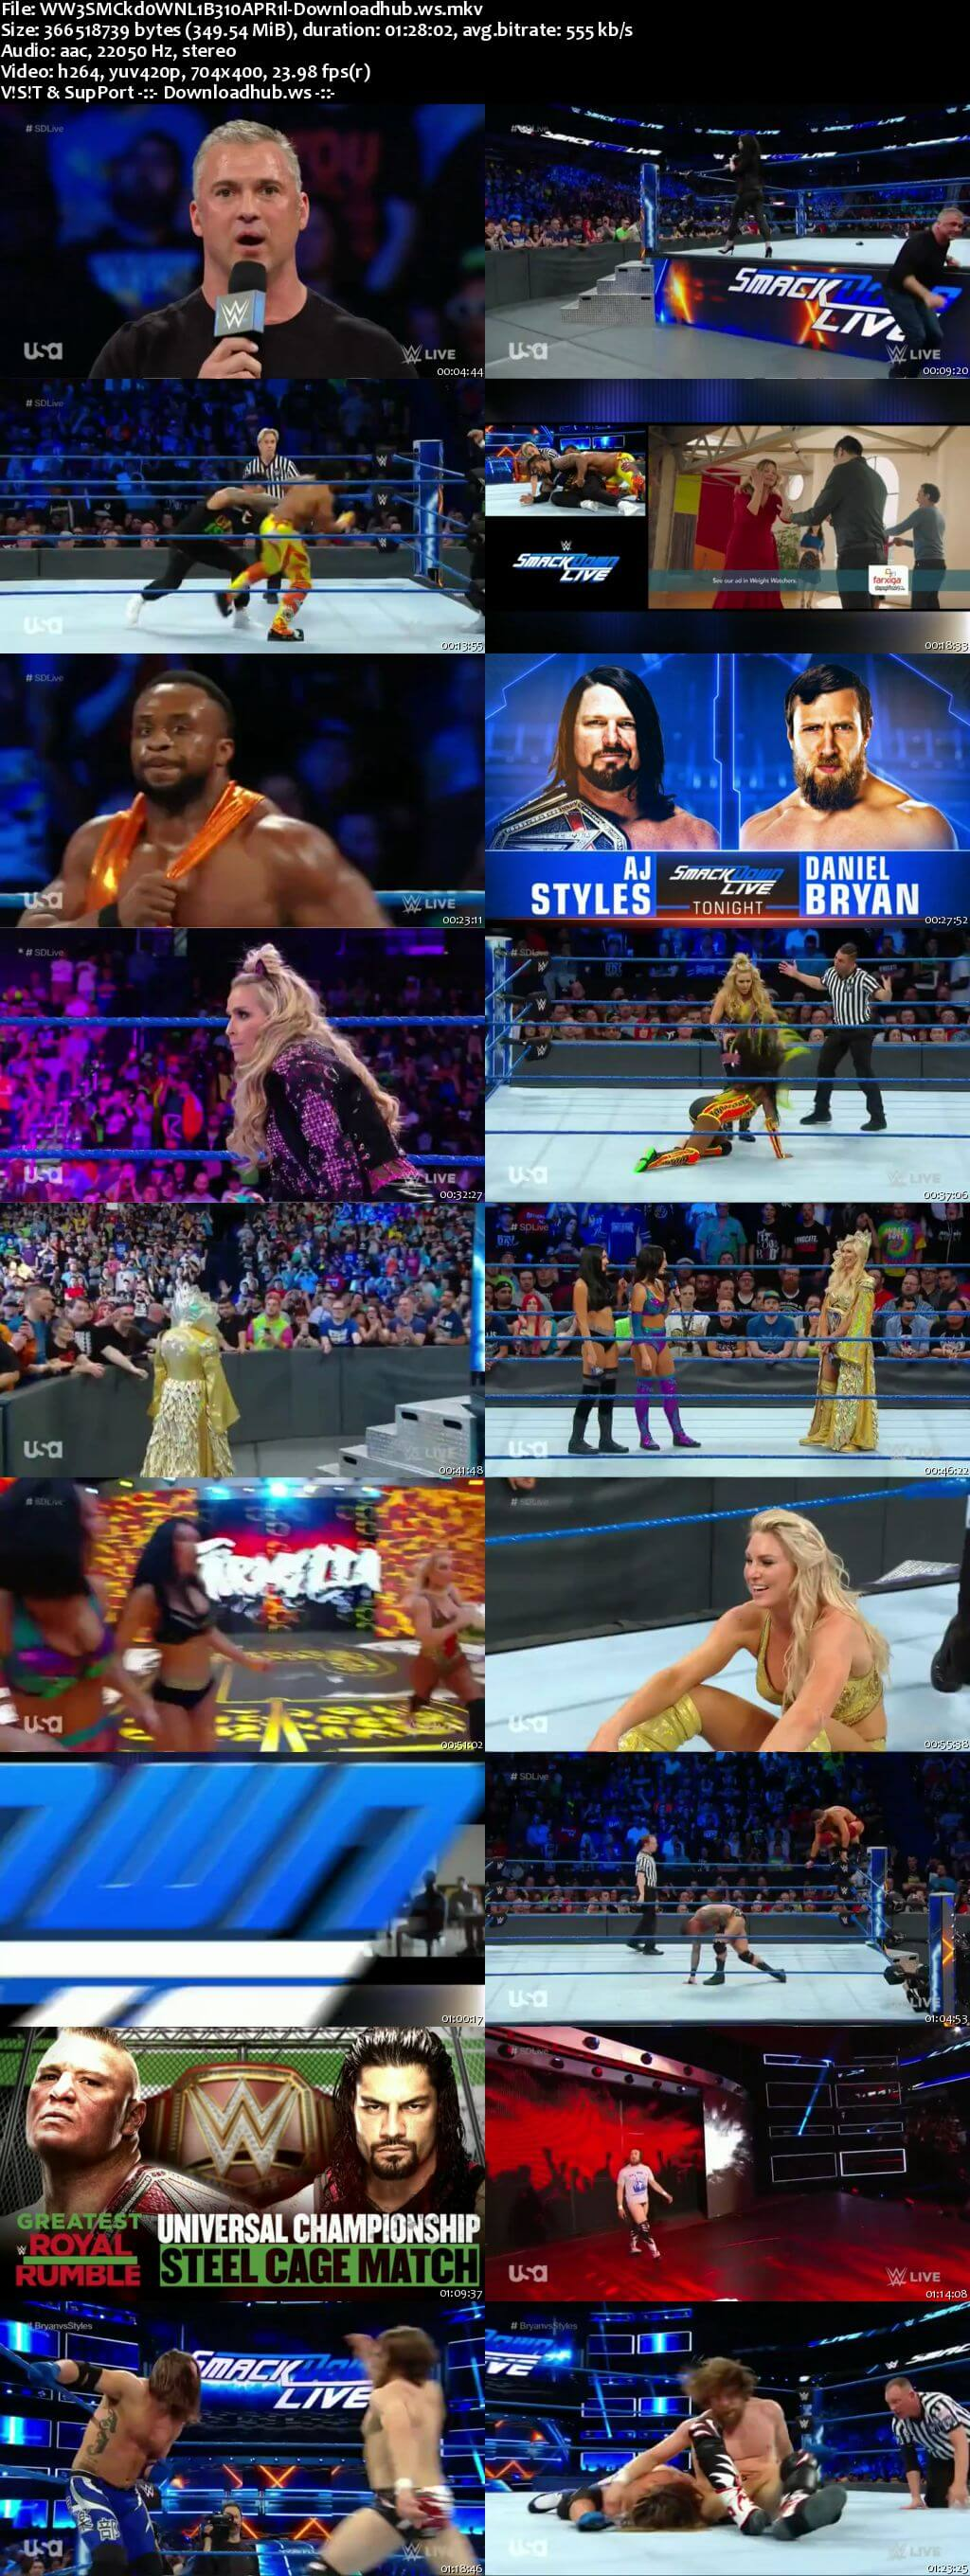 WWE Smackdown Live 10 April 2018 480p HDTV Download